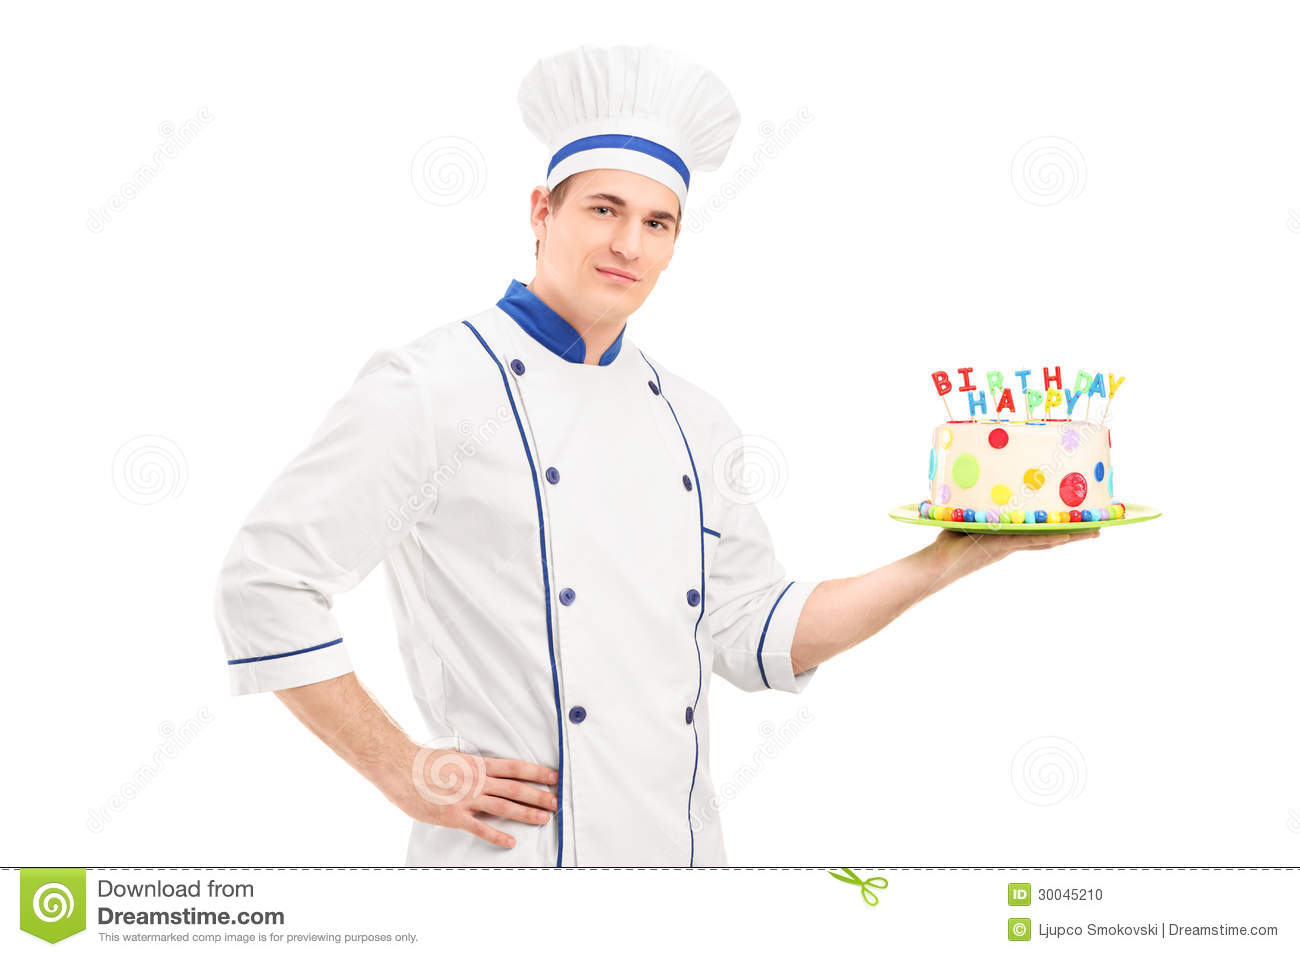 Young male chef in a uniform holding a decorated birthday cake